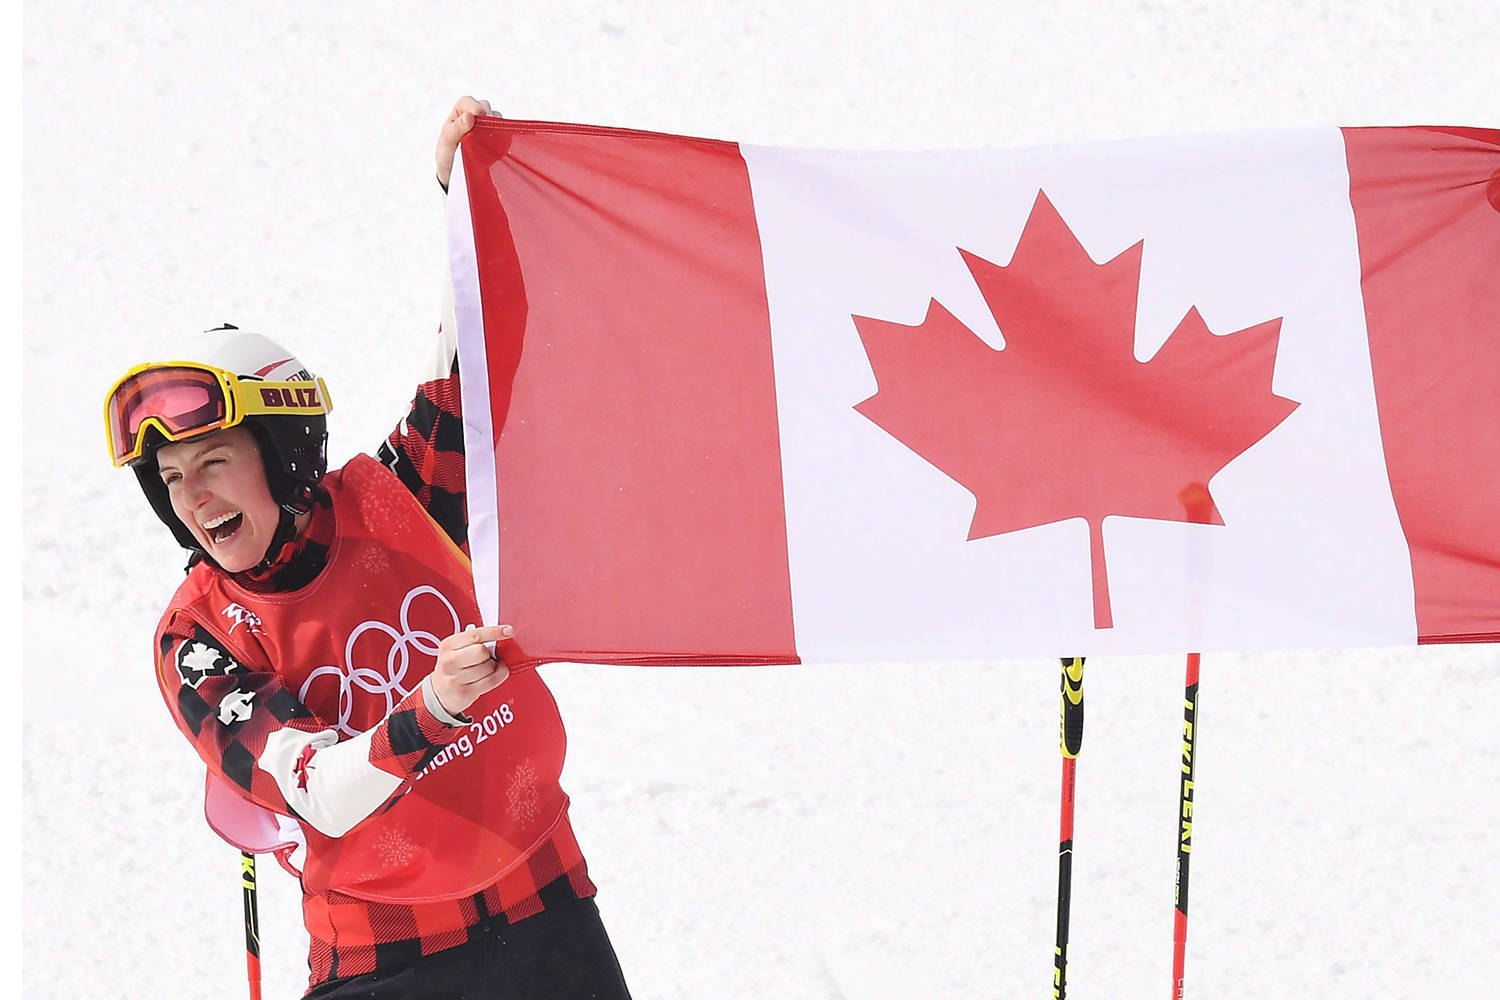 Gold medalist Kelsey Serwa, left, and silver medalist Brittany Phelan both of Canada celebrate following the women's ski cross final at the Phoenix Snow Park at the 2018 Winter Olympic Games in Pyeongchang, South Korea, Friday, Feb. 23, 2018. THE CANADIAN PRESS/Jonathan Hayward